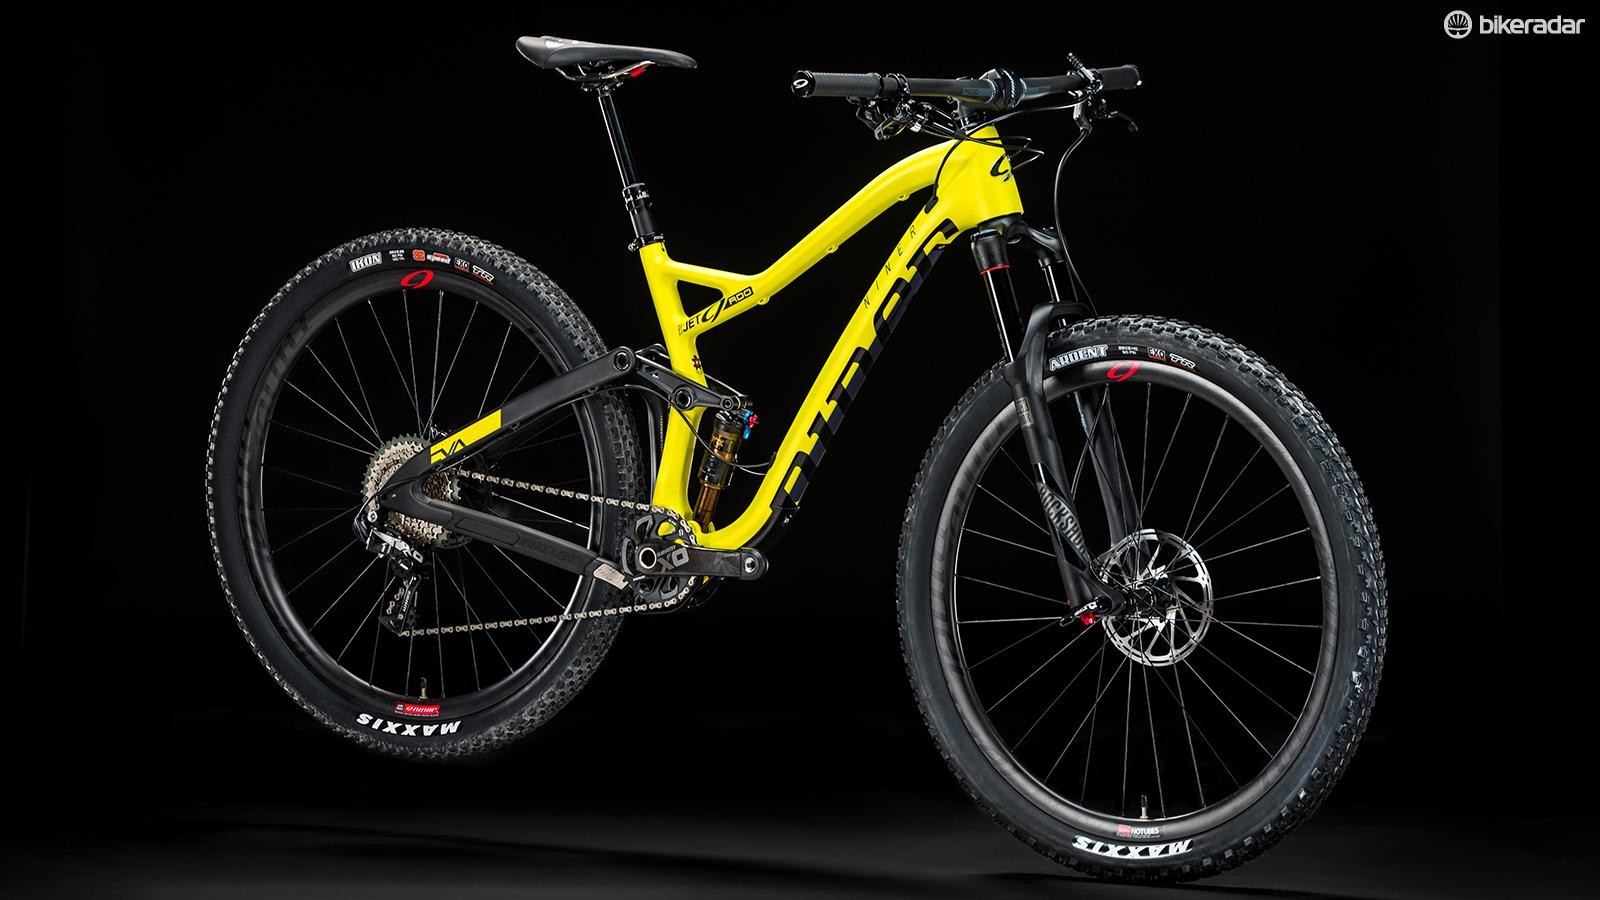 When the Jet 9 RDO was remade as a trail bike it also transitioned from press-fit to a threaded BB